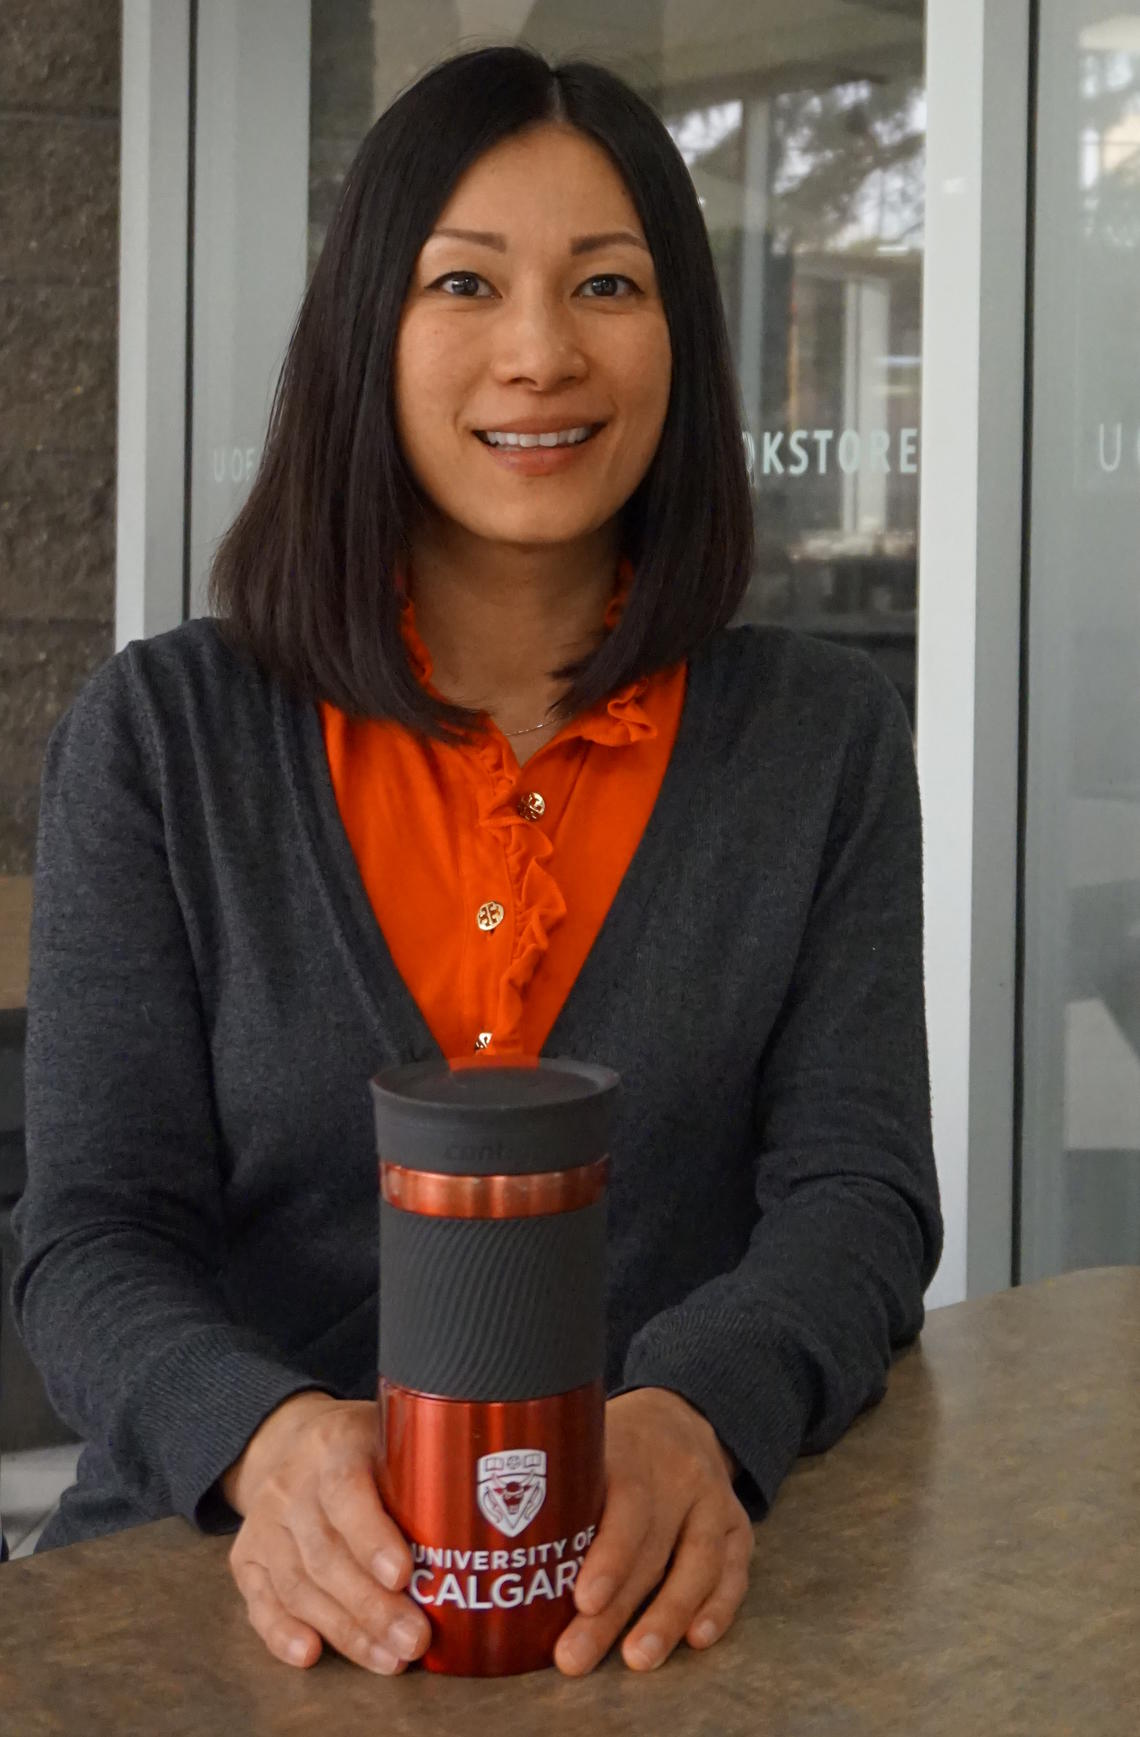 Using the ecofriendly cup she received for presenting at the Women's Leadership Conference is just one way Gina Ko is doing her part to help the environment.